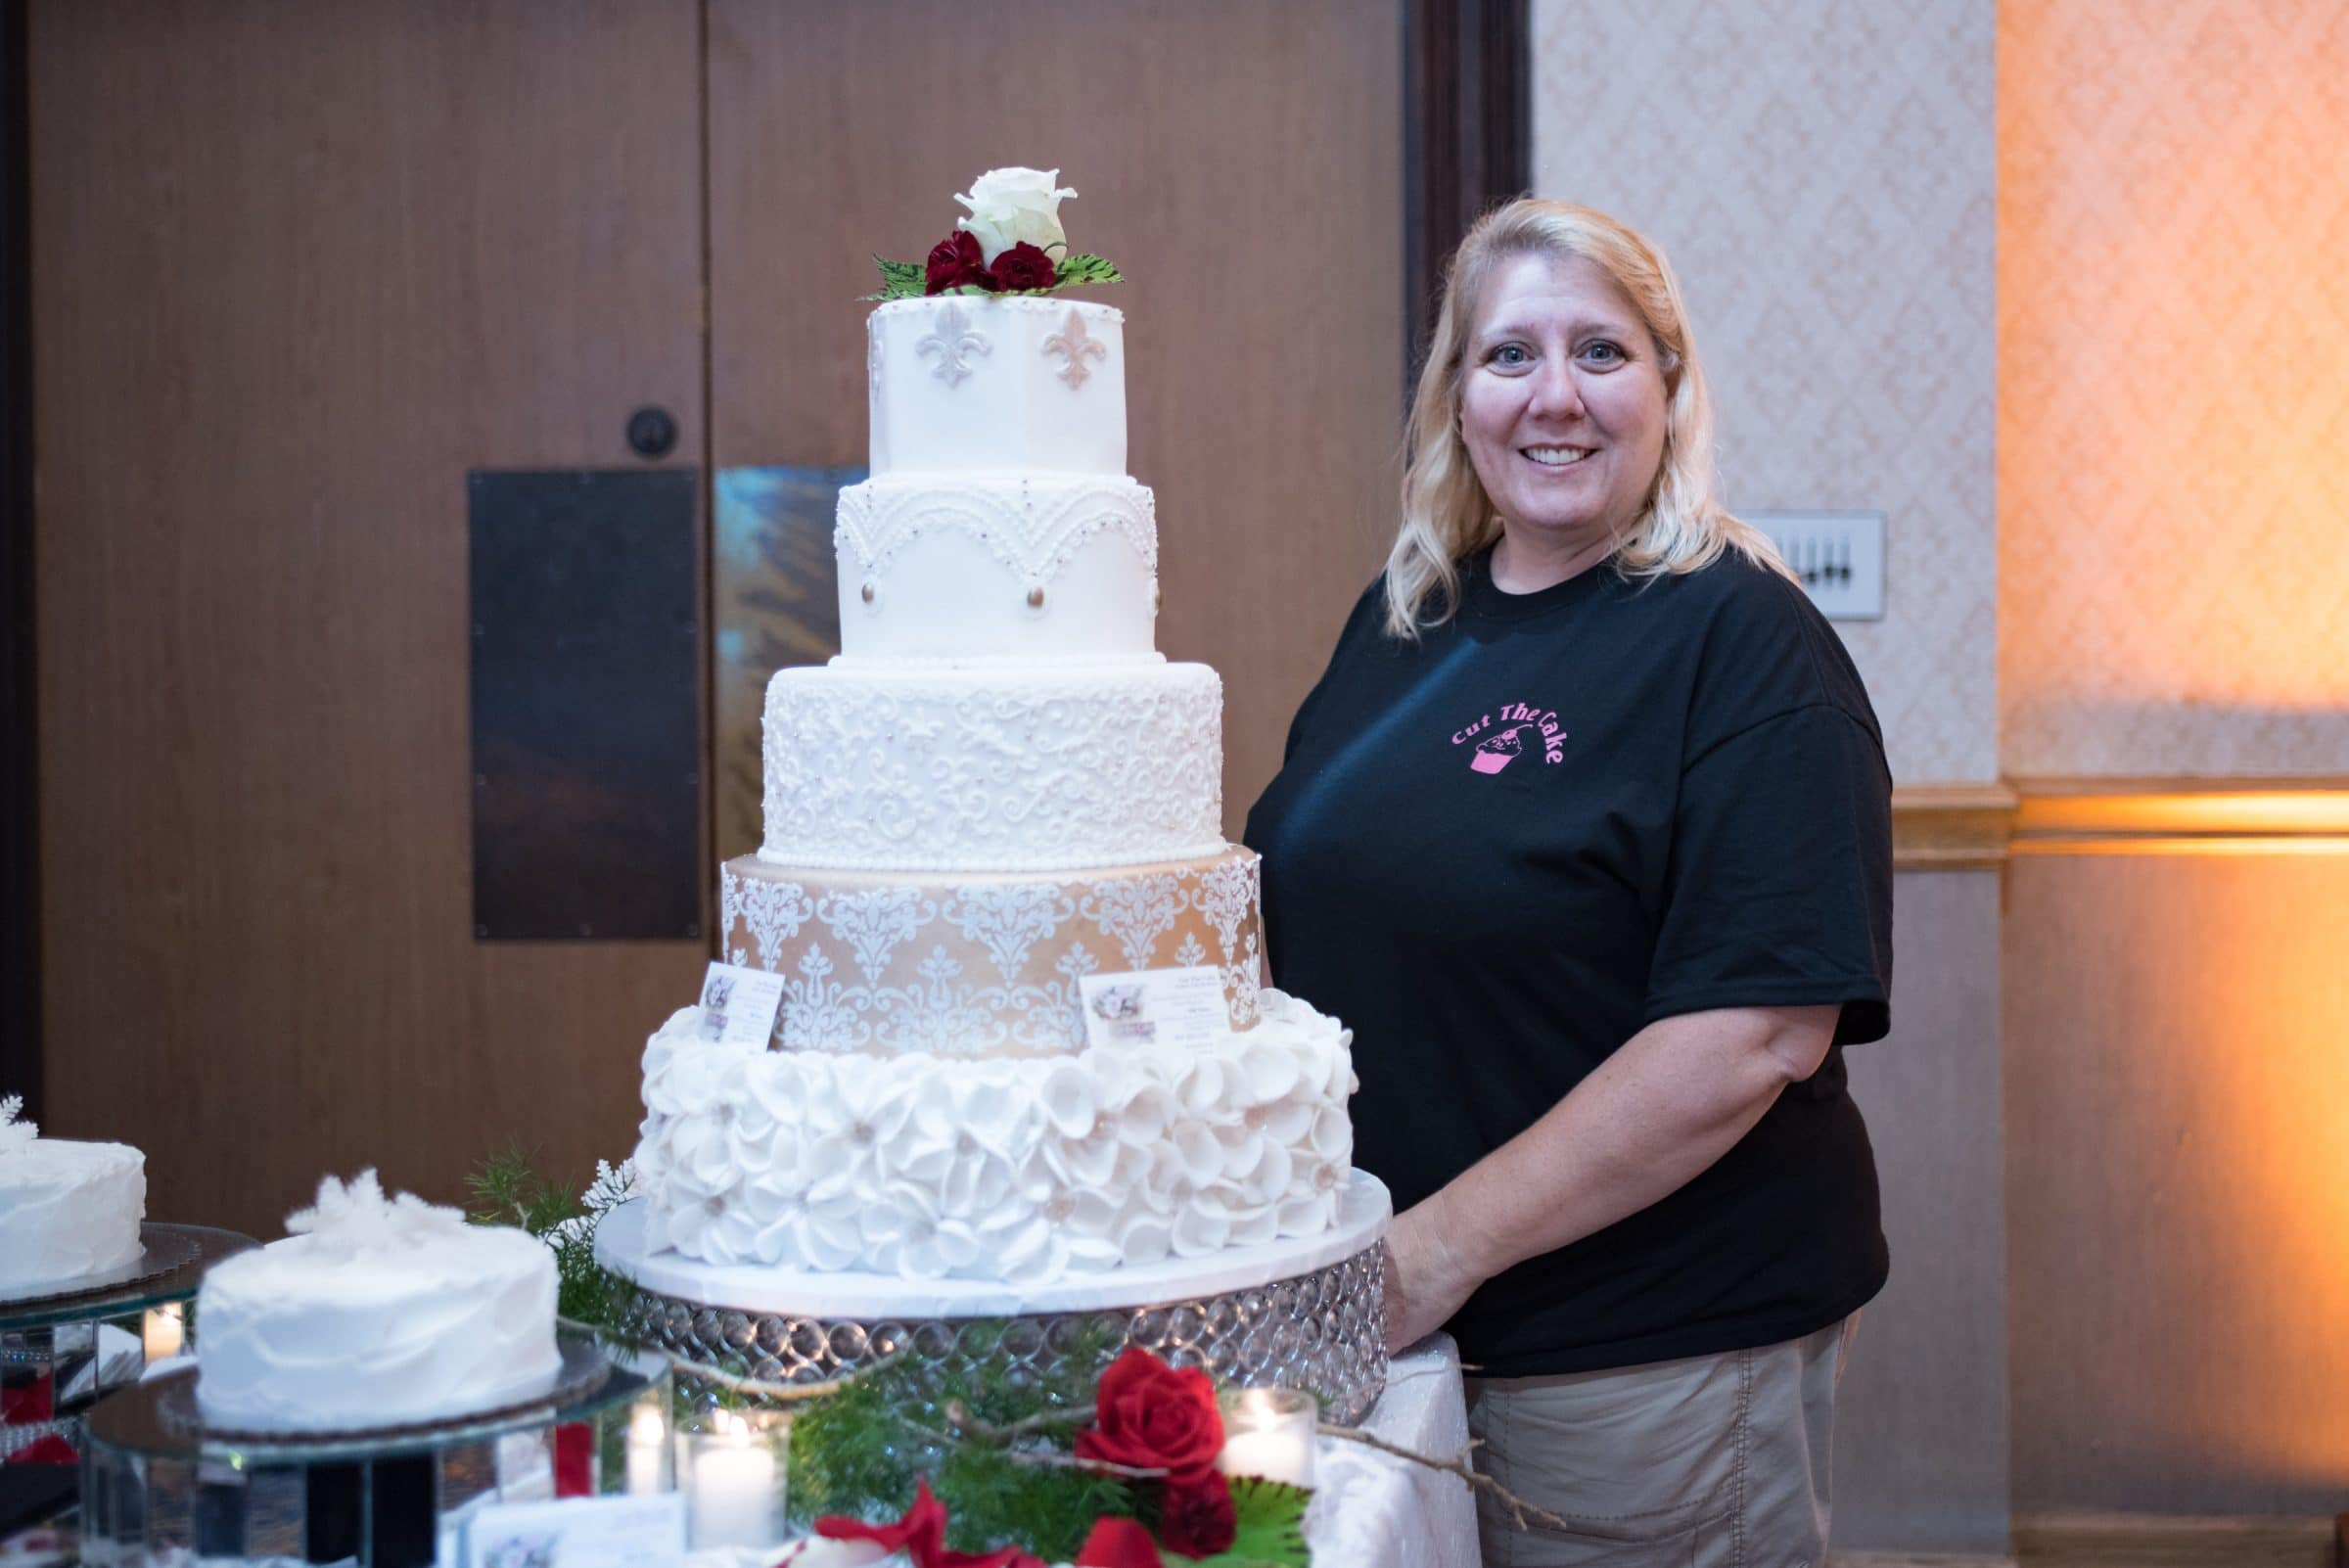 Woman standing next to five tier wedding cake